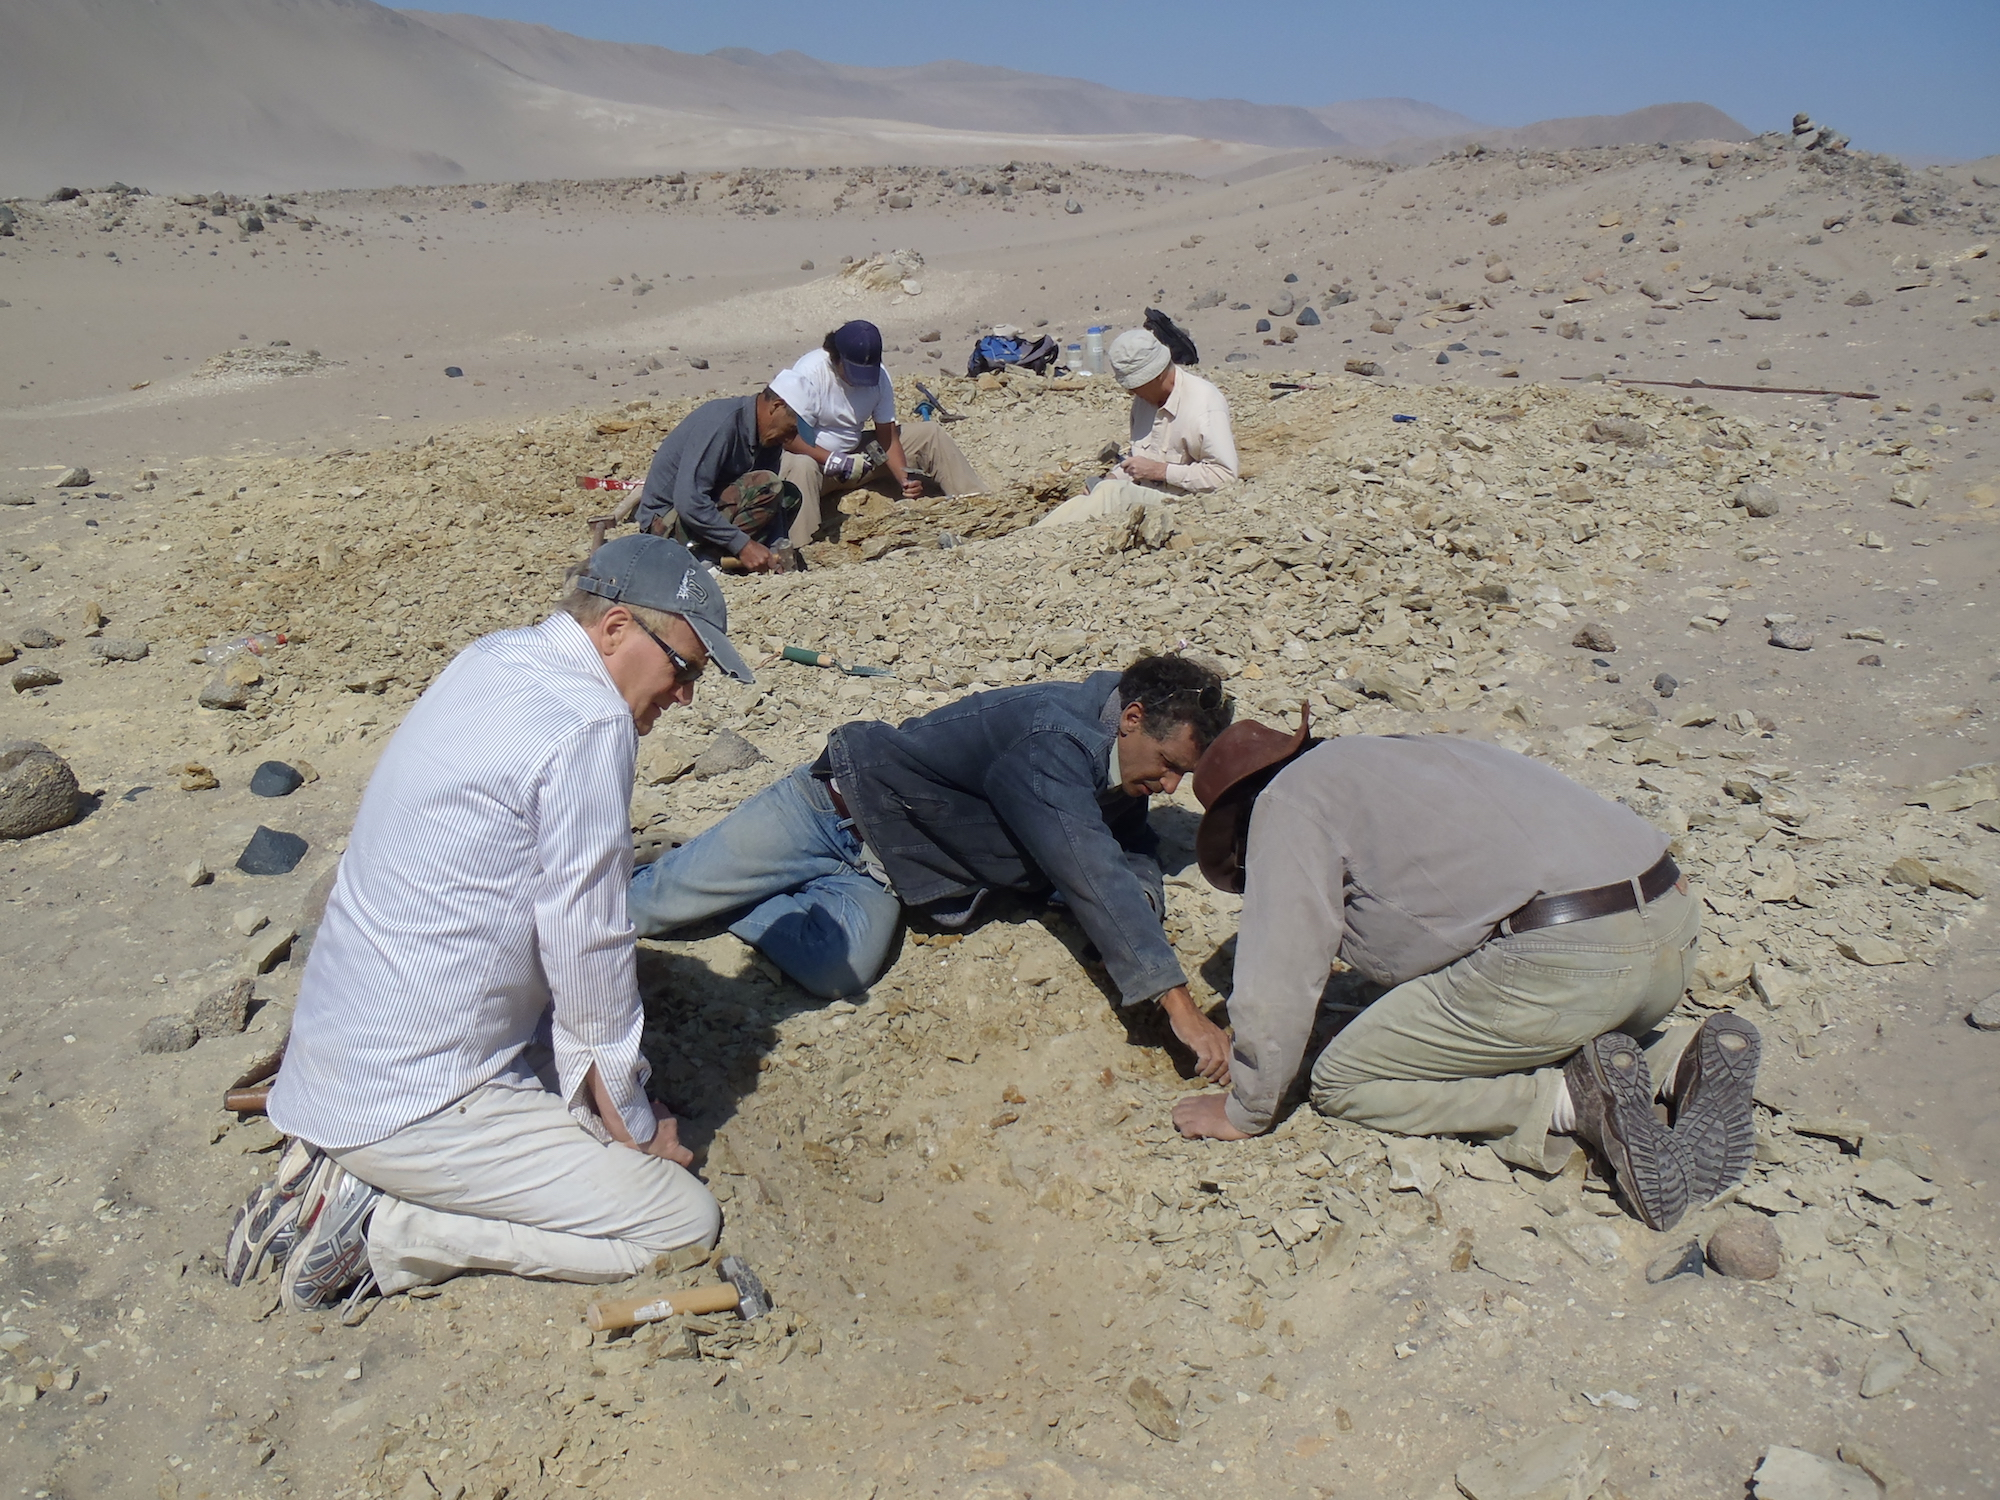 Photo of the excavation of the skeleton of Peregocetus, in Playa Media Luna. Photo by G. Bianucci.